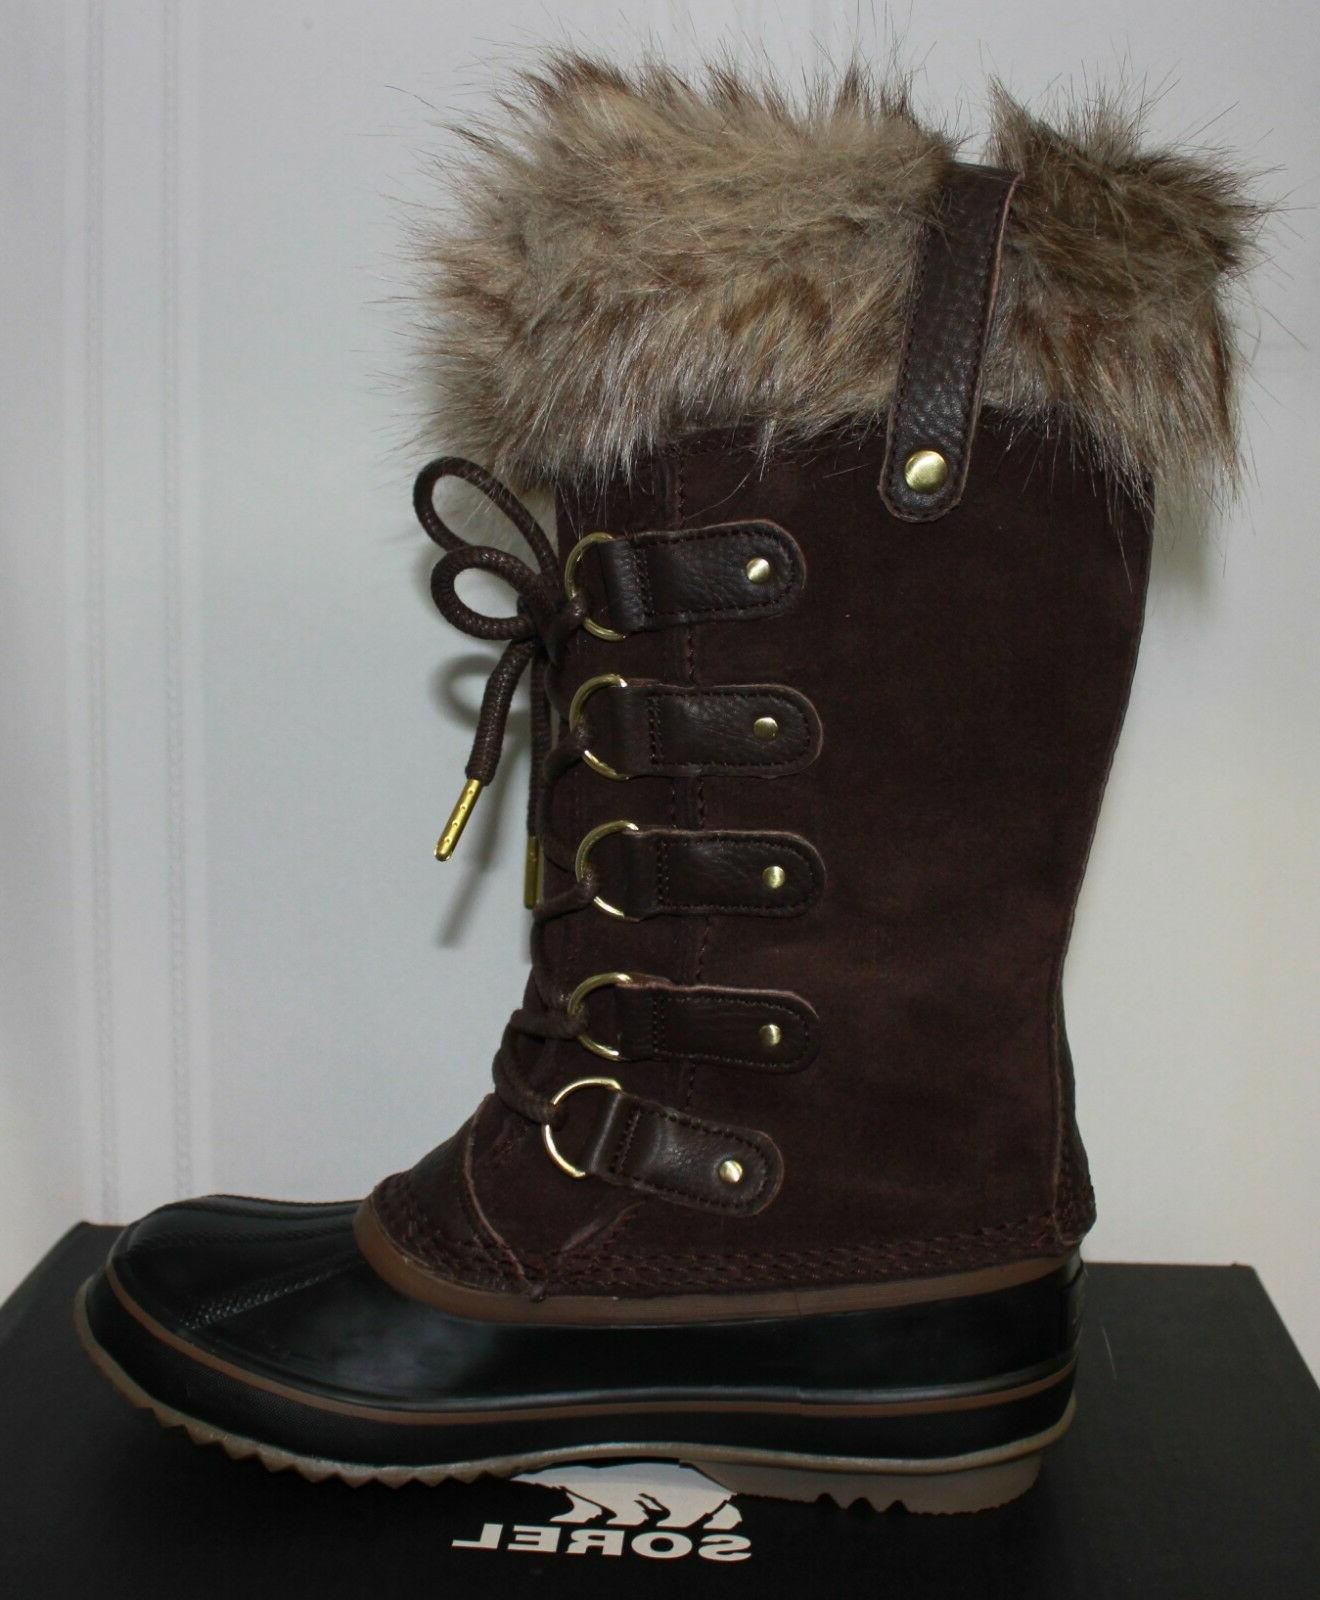 Sorel Women's Arctic boots Cattail Brown New With